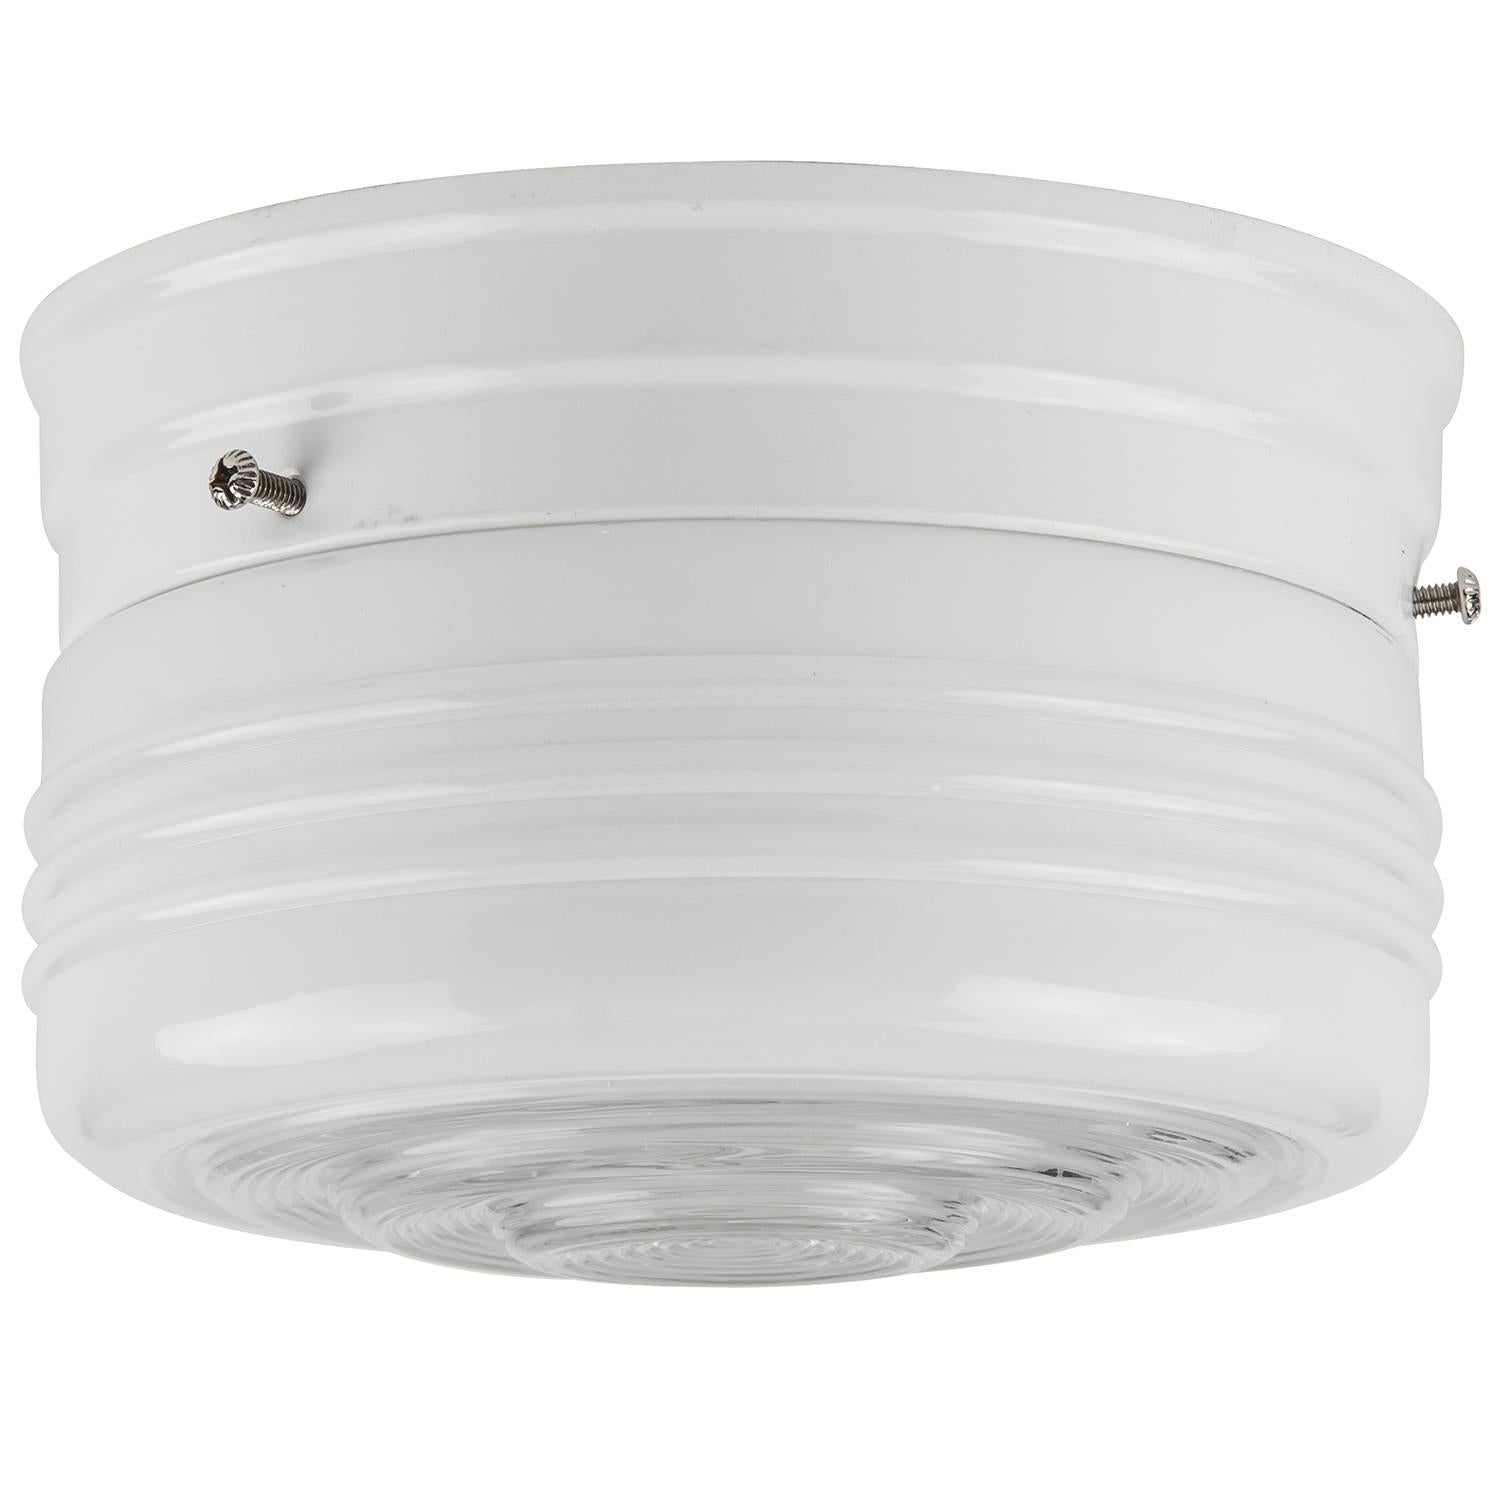 SUNLITE 10in Drum Ceiling Fixture, White Finish, Semi-Frosted Glass